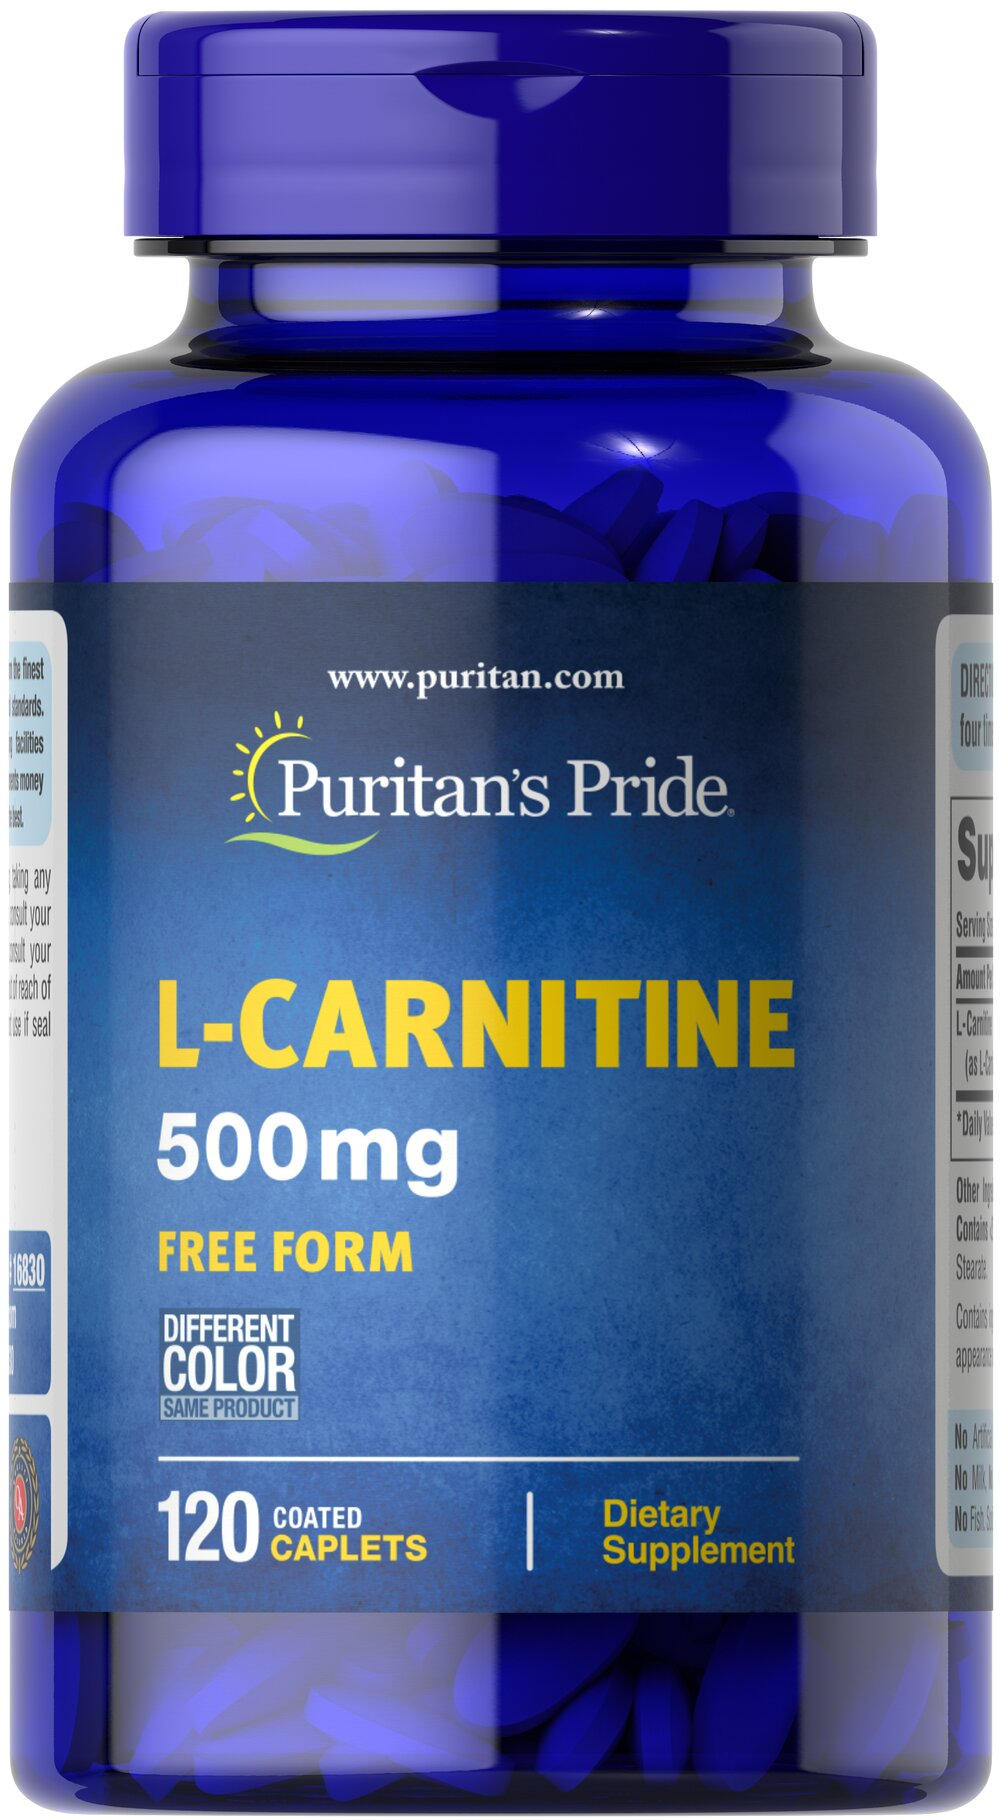 L-Carnitine 500 mg  120 Caplets 500 mg $25.49